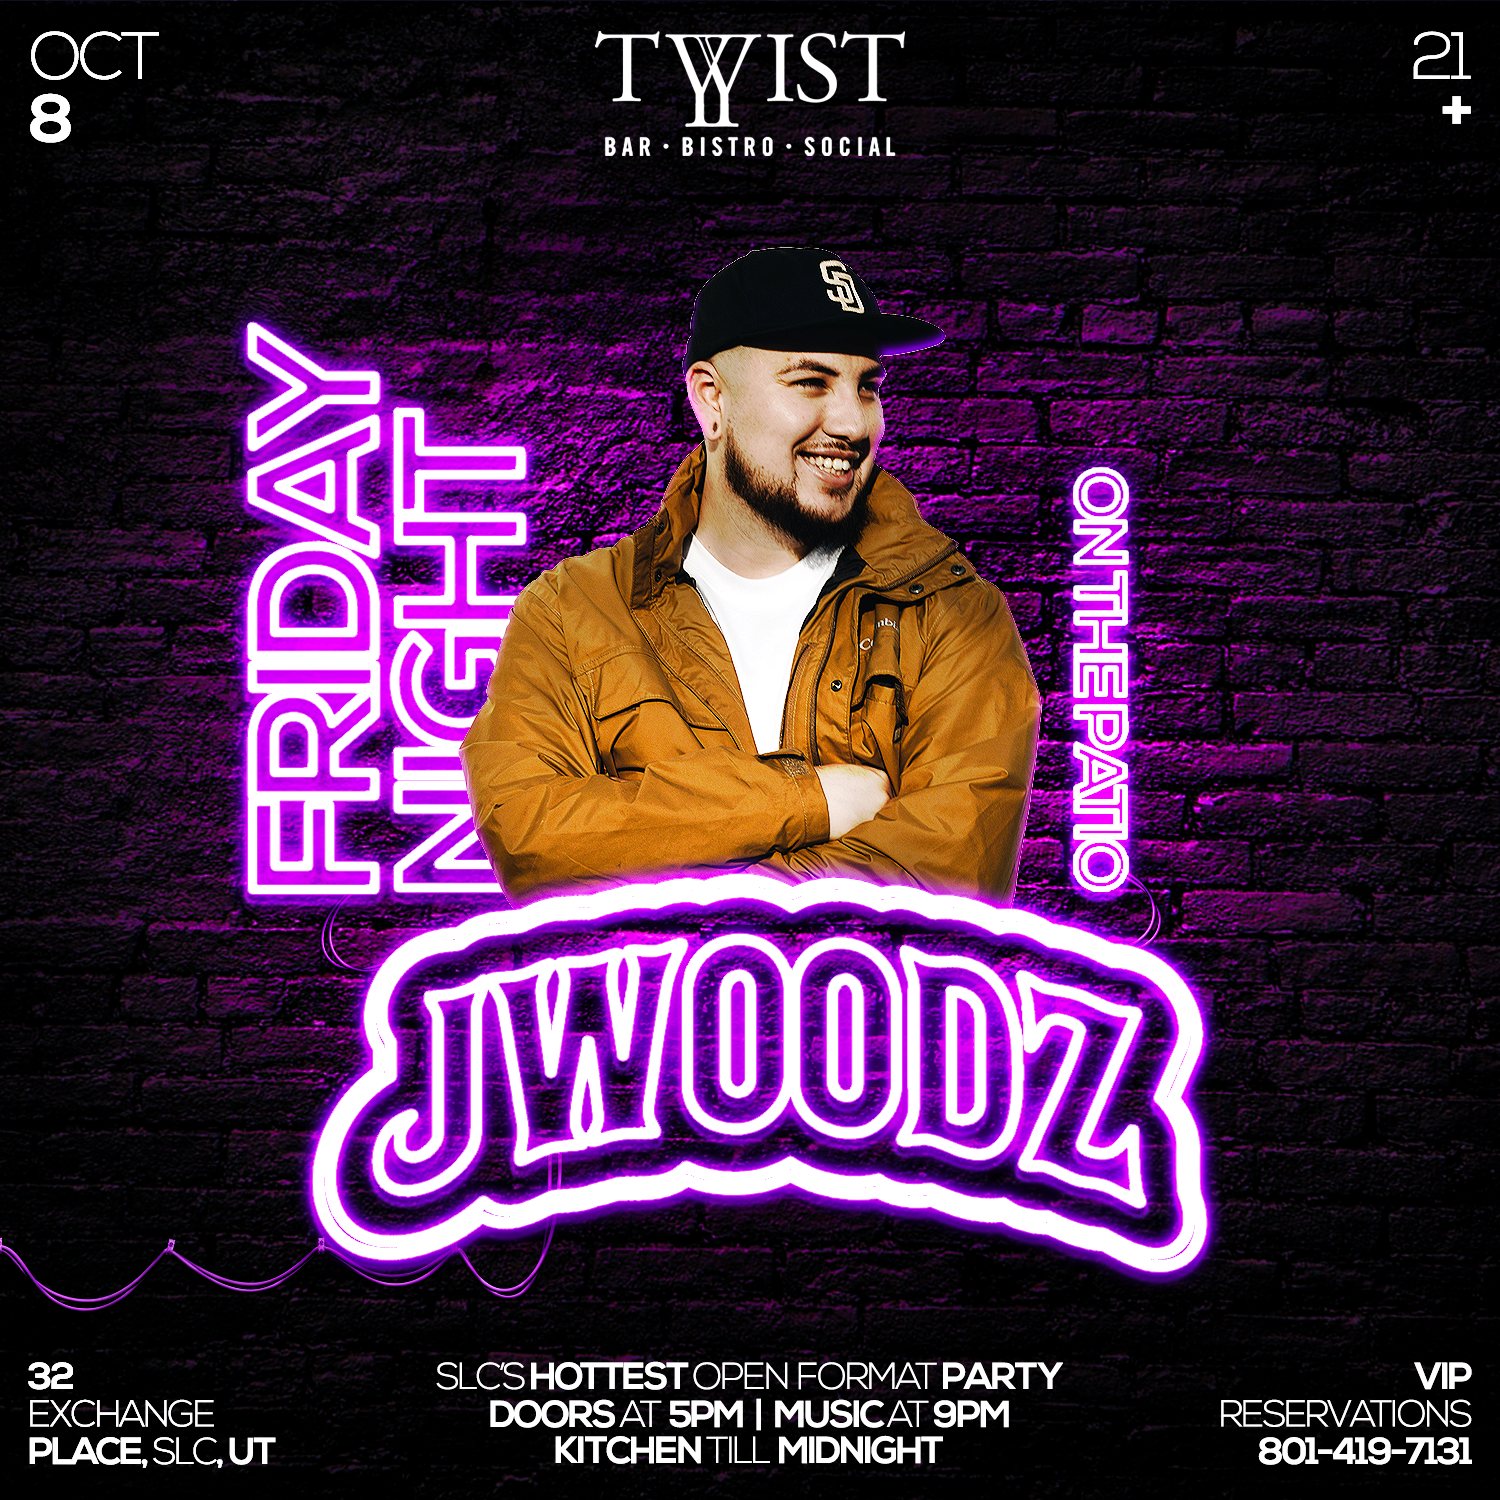 Event flyer for weekly Friday night held at Twist Bar & Bistro every Friday on 32 Exchance Place in Downtown Salt Lake City featuring live DJs, sports, and drink and food specials. Featuring DJ J Woodz